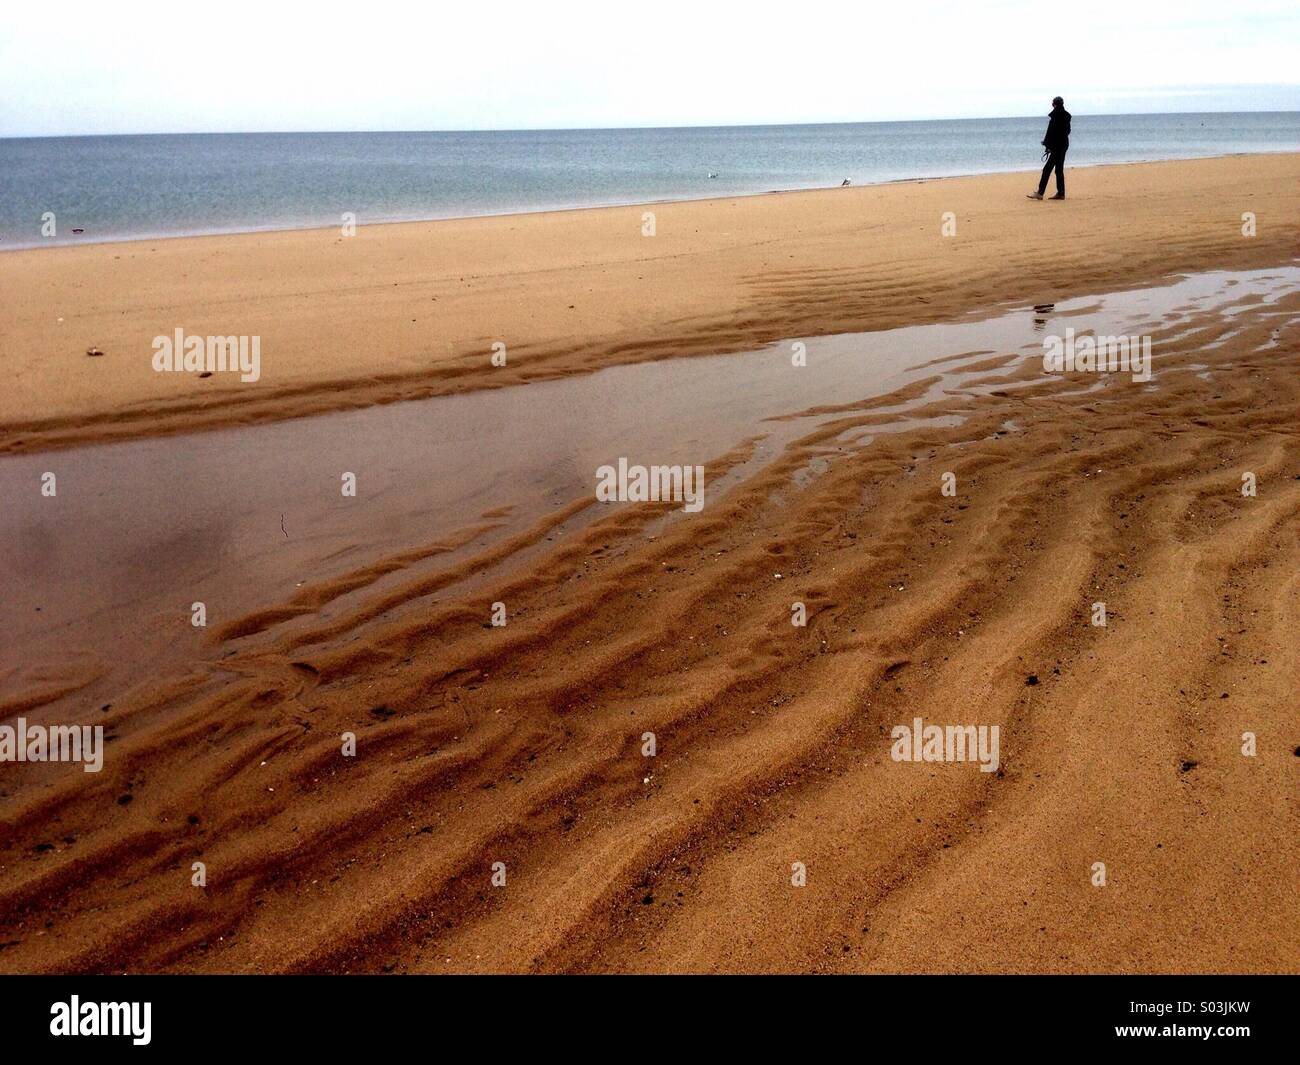 Walking on the beach in cape cod. - Stock Image